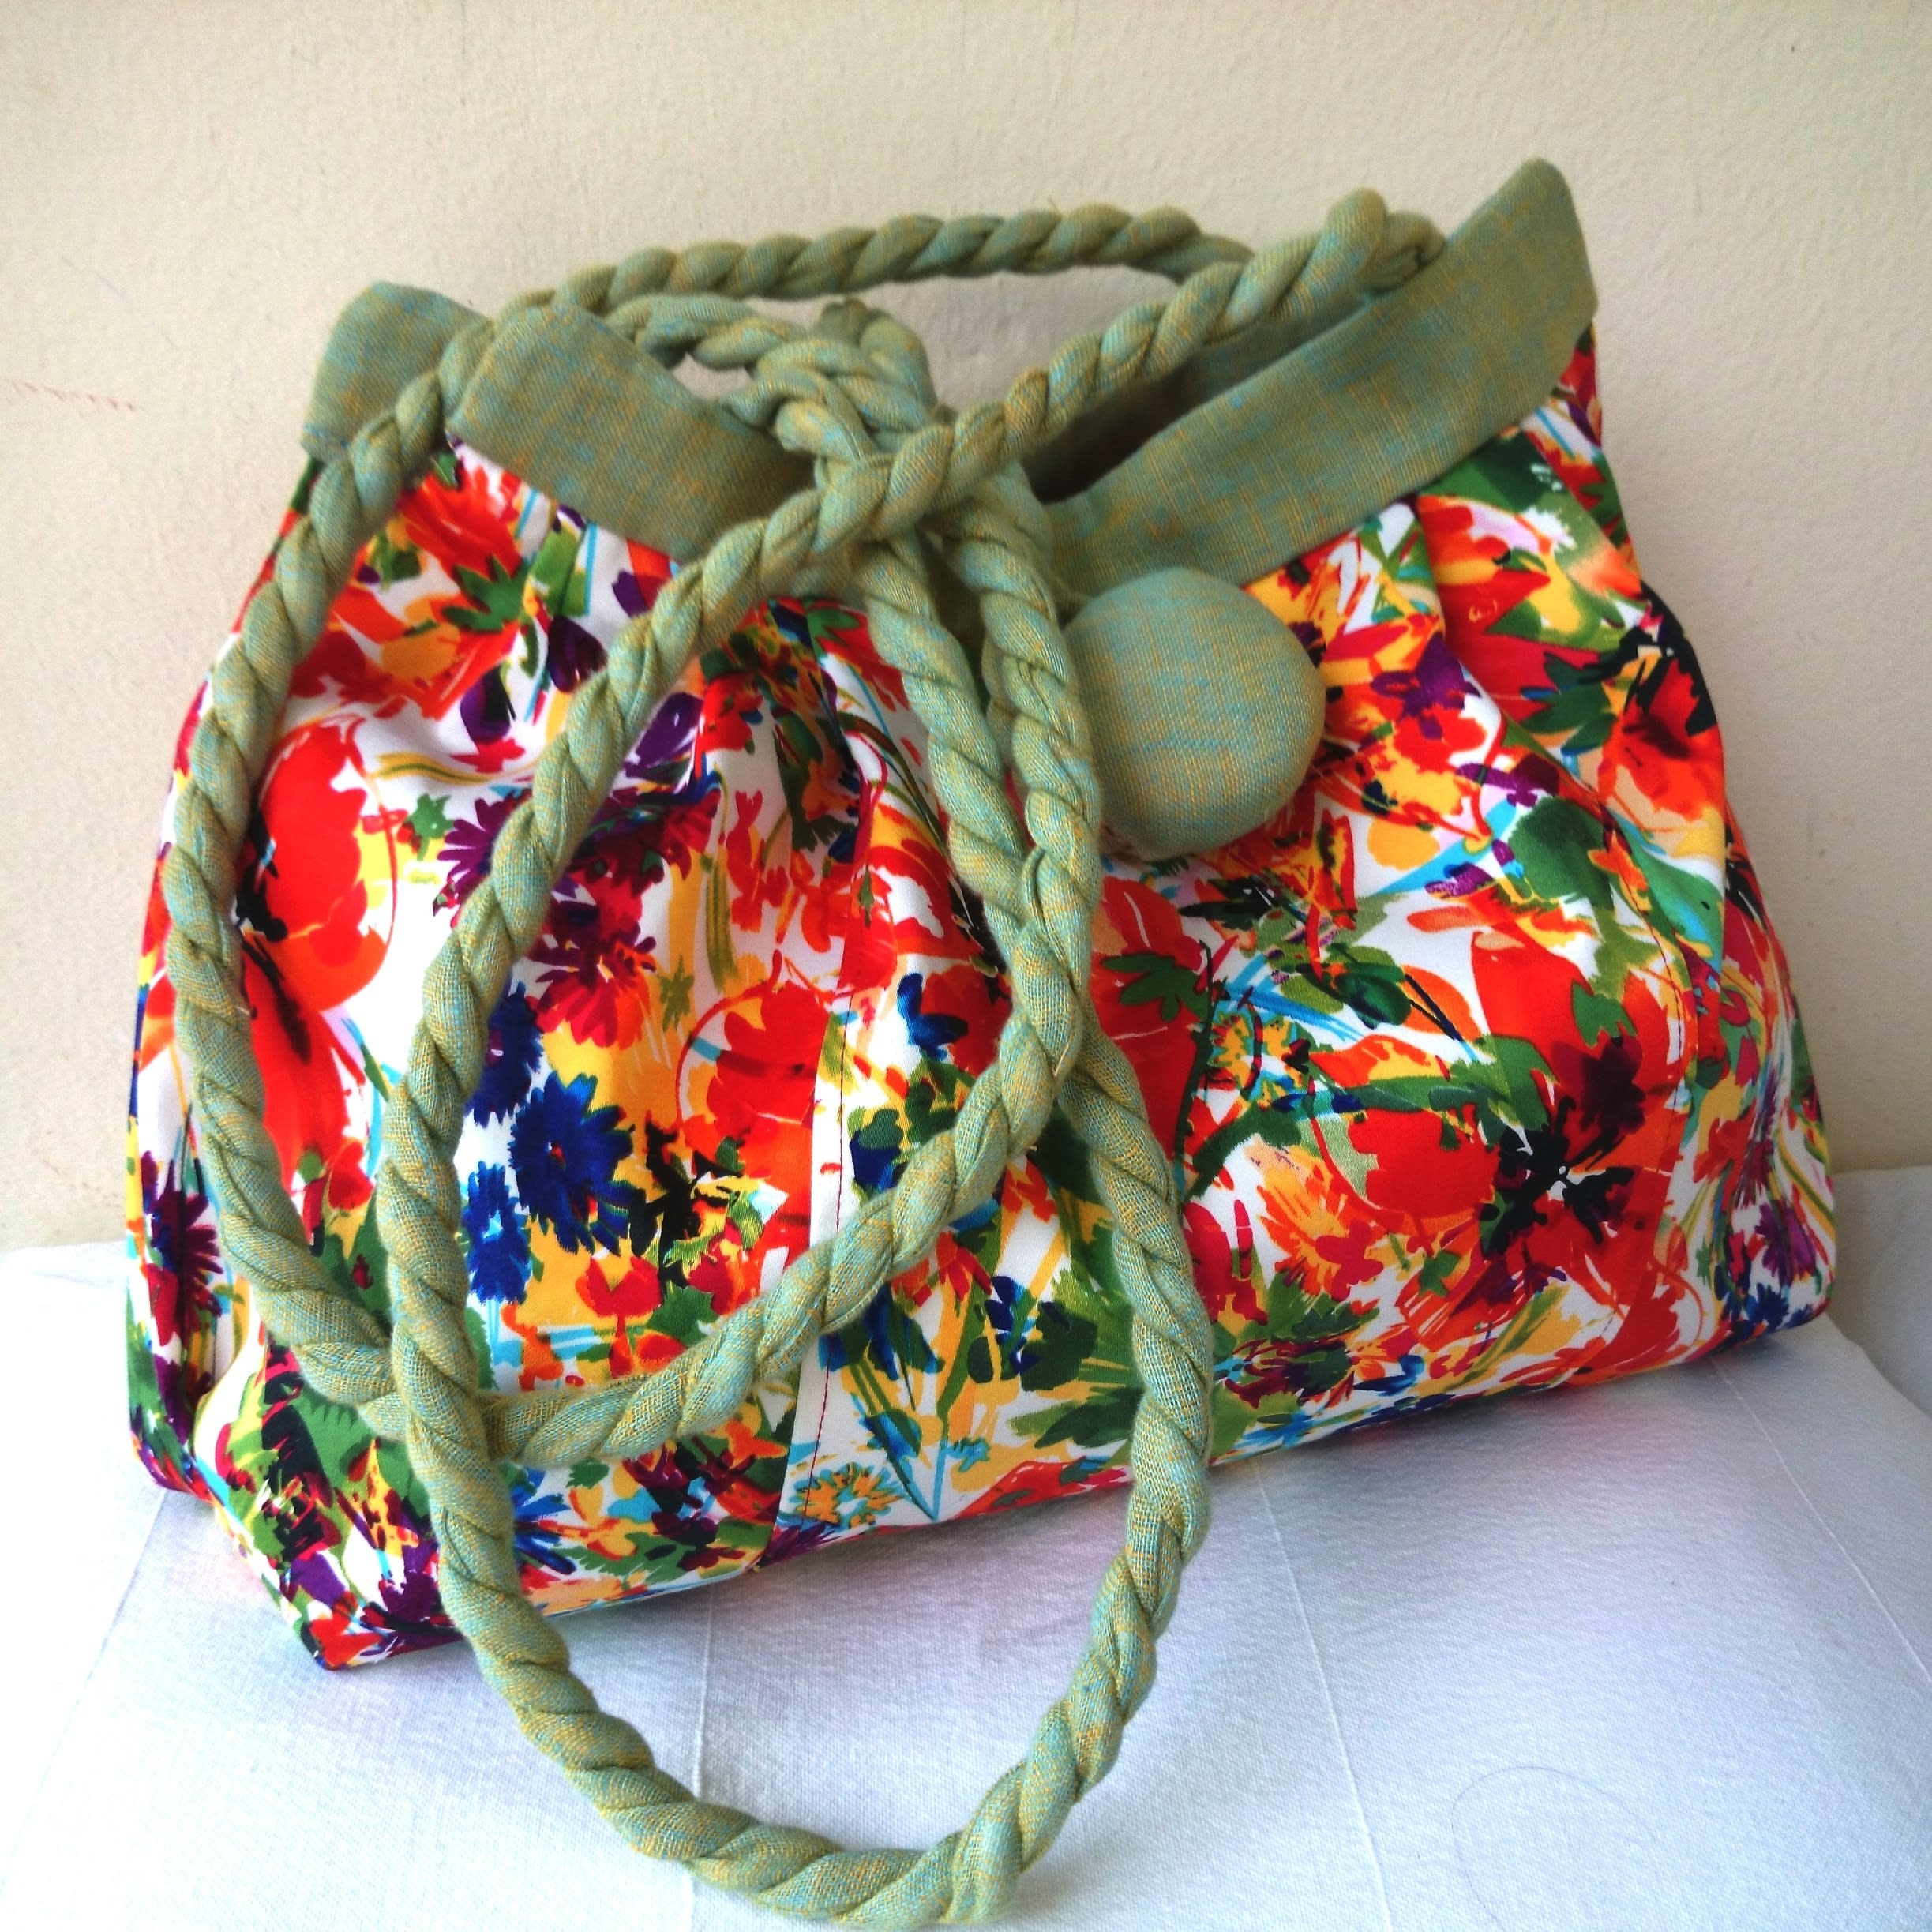 Flower bag, Trendy and casual chic light green and red flowers hand bag - shoulder bag.